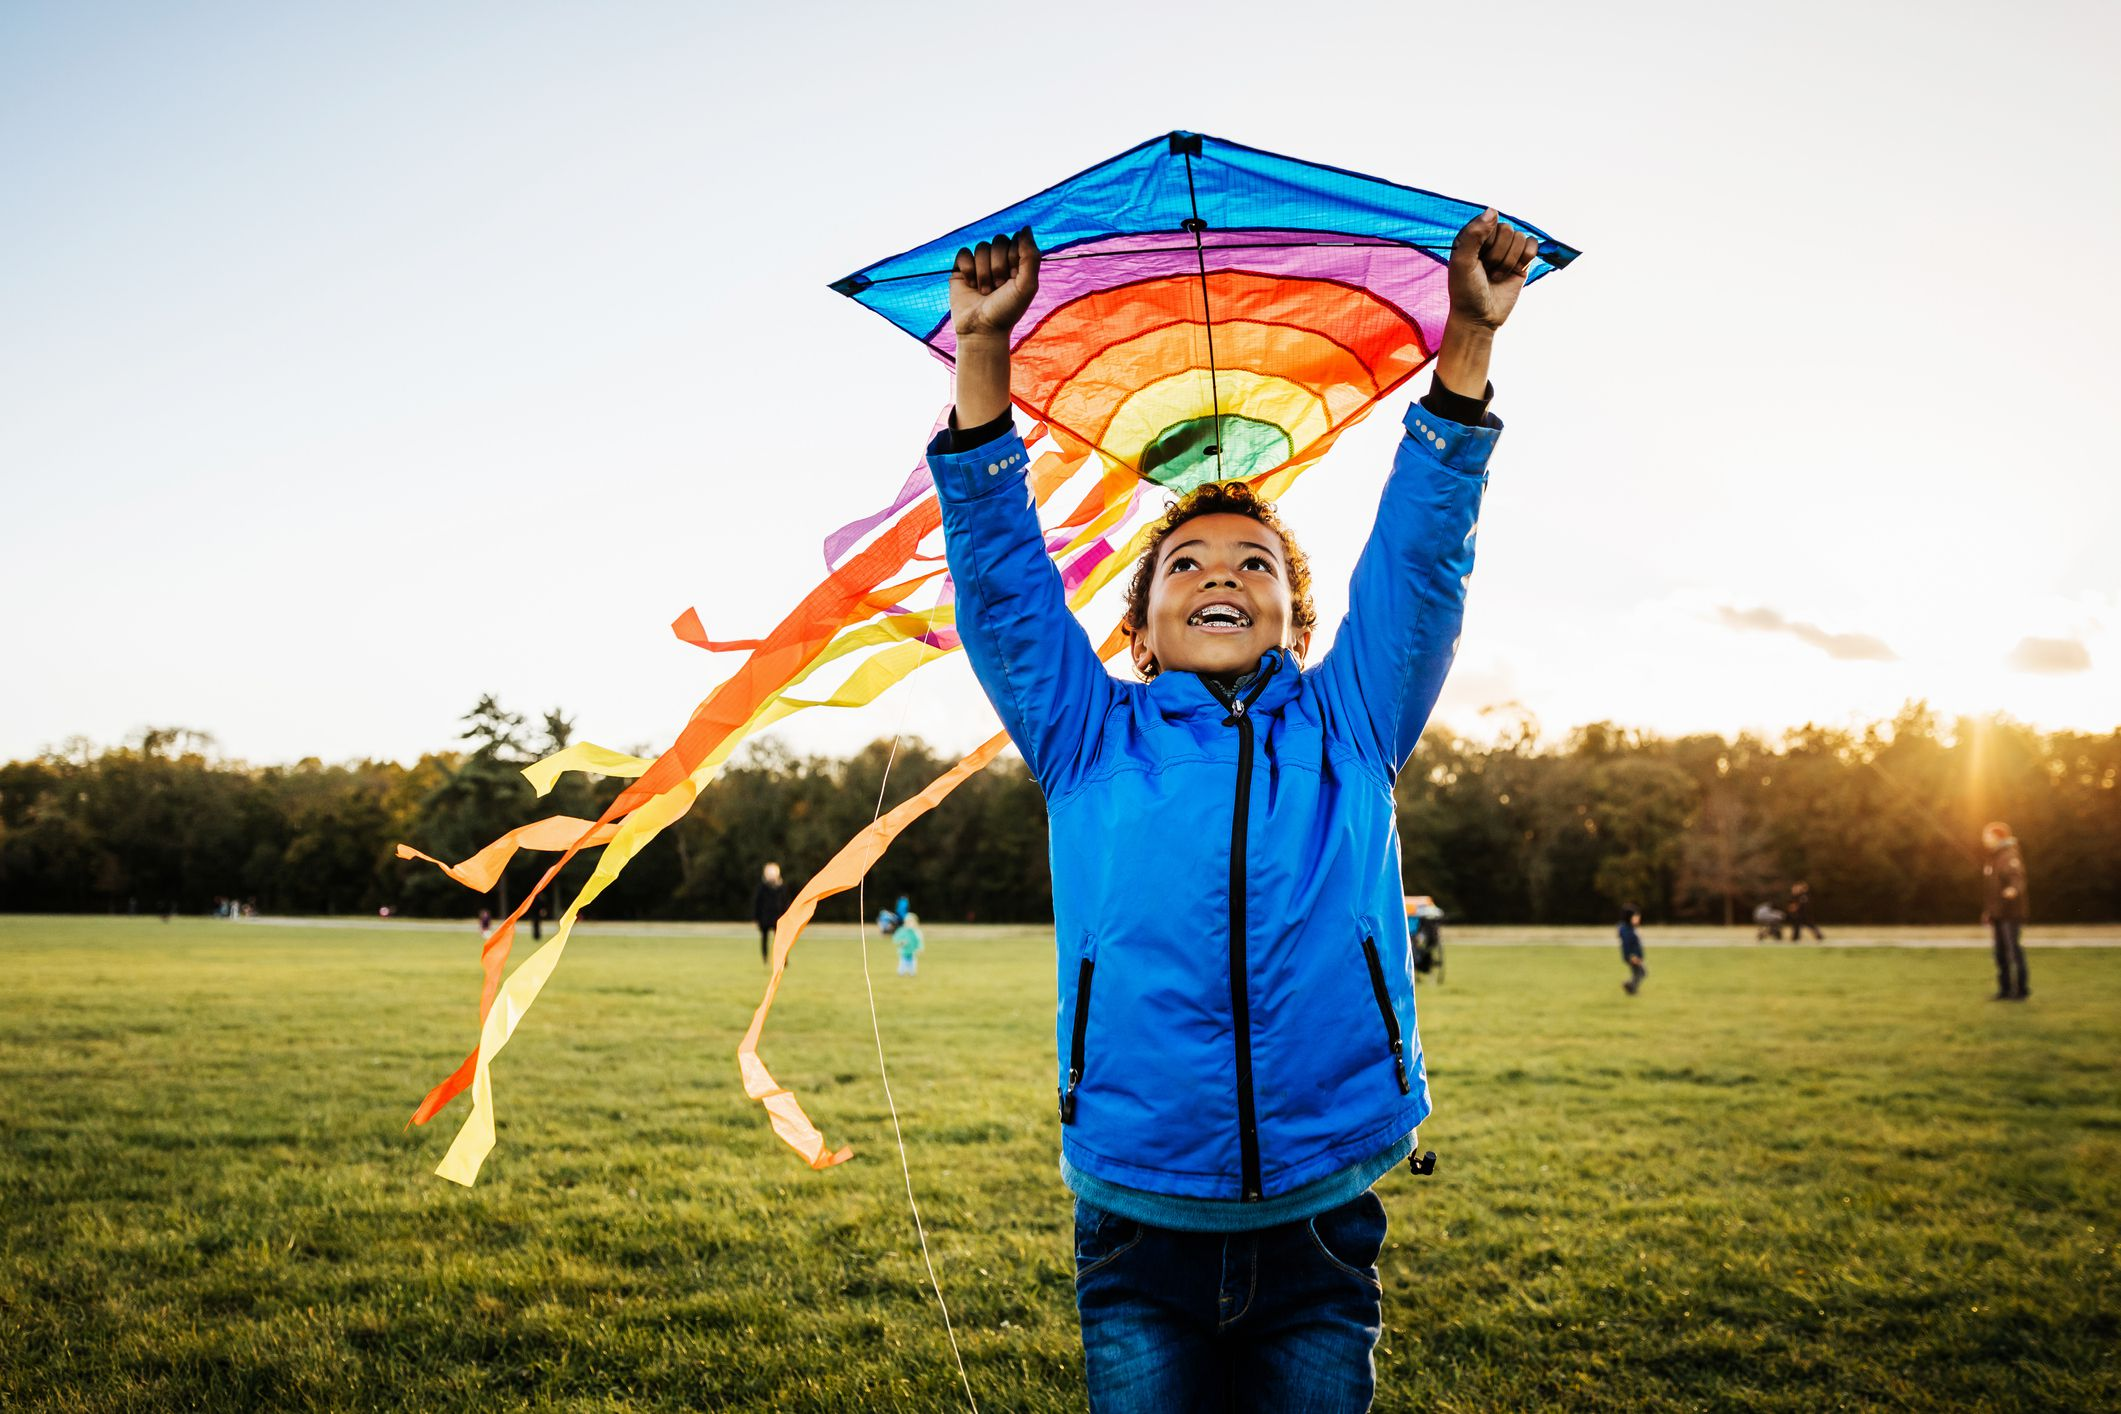 The 8 Best Kites for Windy Days in 2019